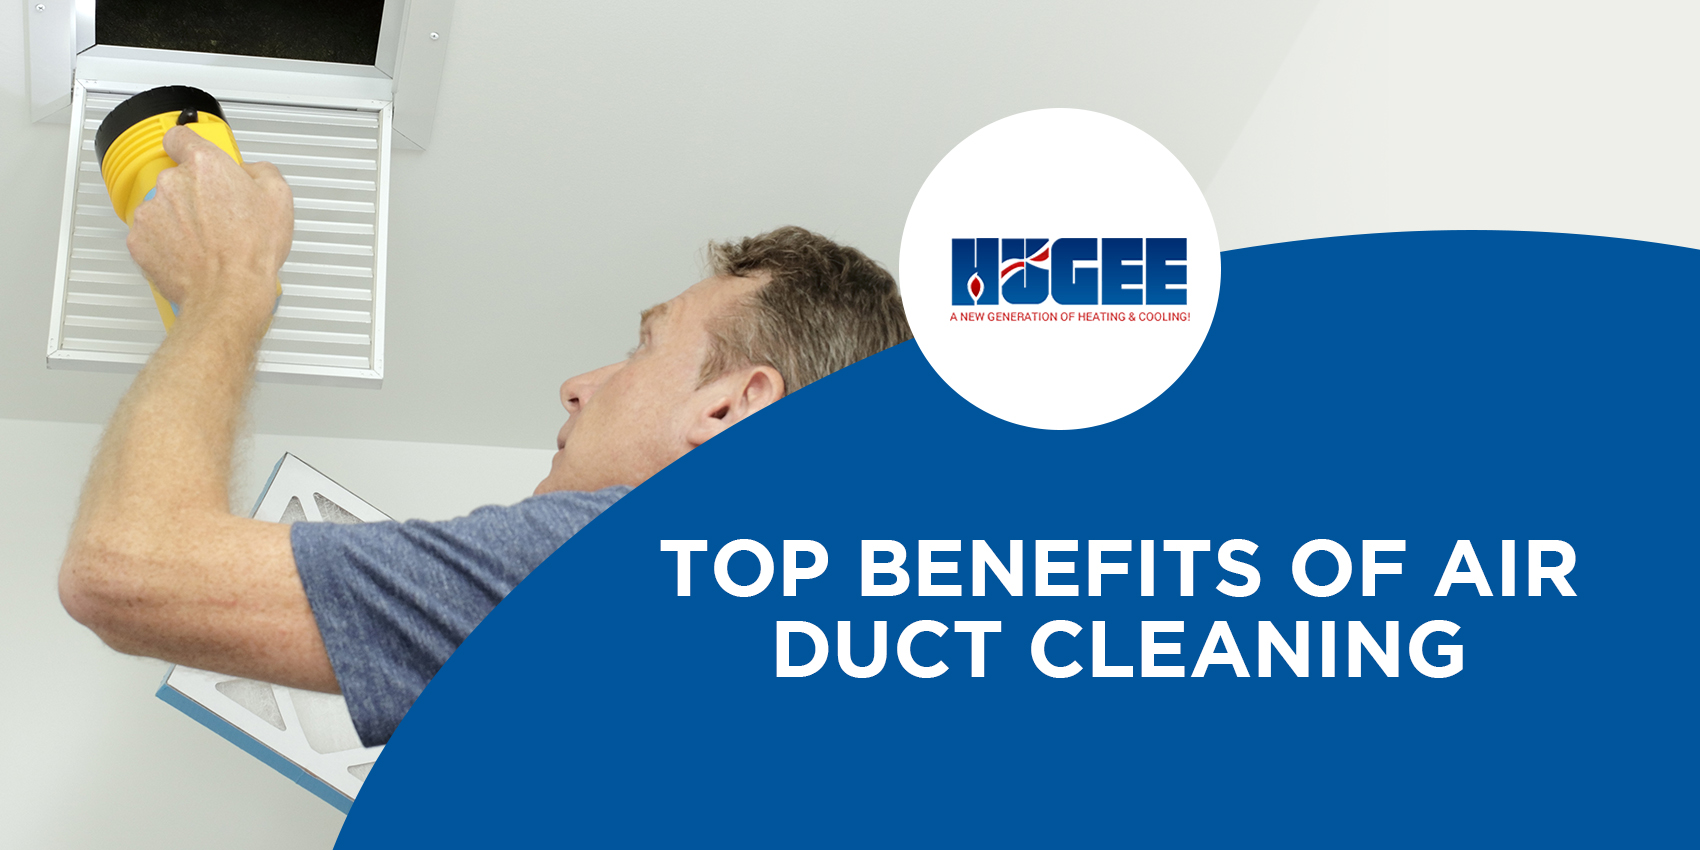 Top Benefits of Air Duct Cleaning